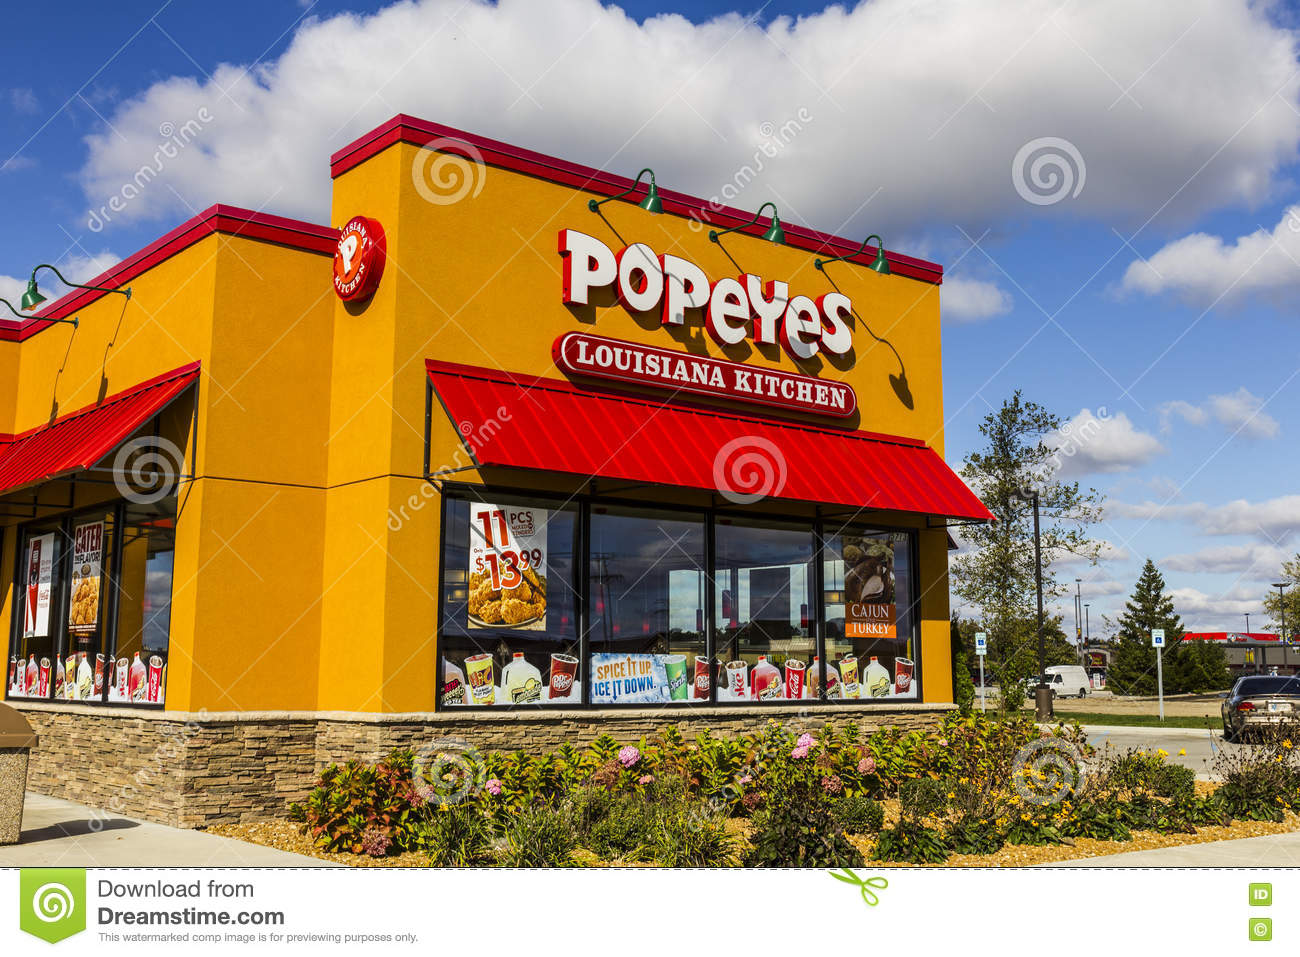 Popeyes Louisiana Kitchen Logo Vector Anderson  Circa October 2016 Popeyes Louisiana Kitchen Fast Food